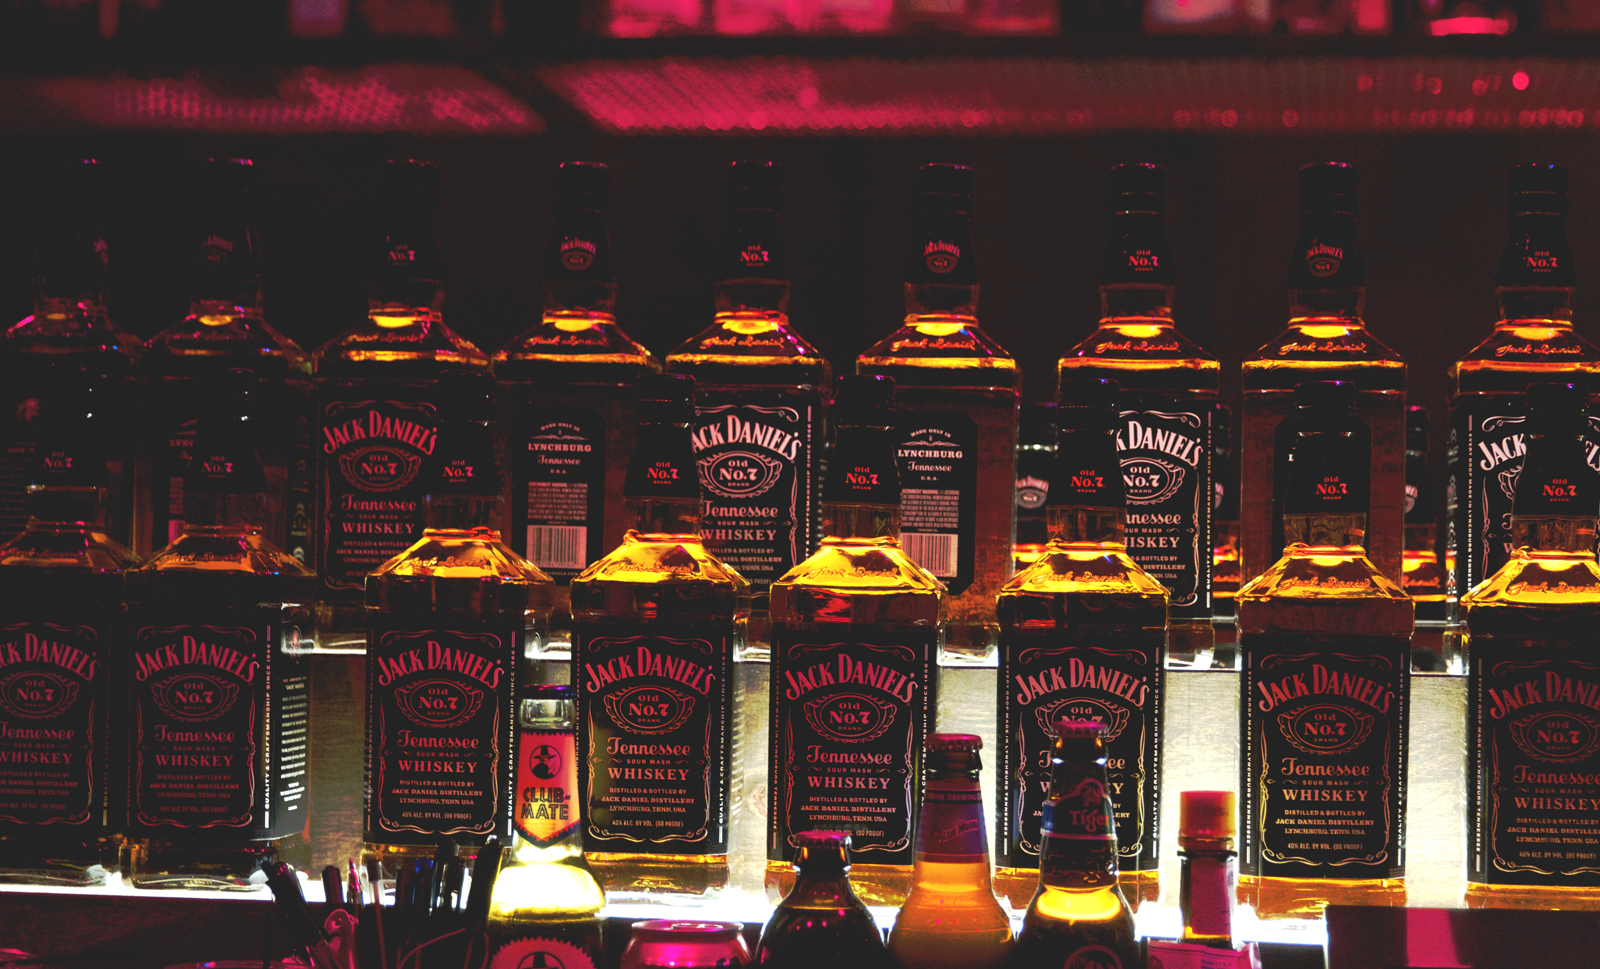 Photographer for doNYC's Jack Daniel's Signature event series with a focus onproduct imagery